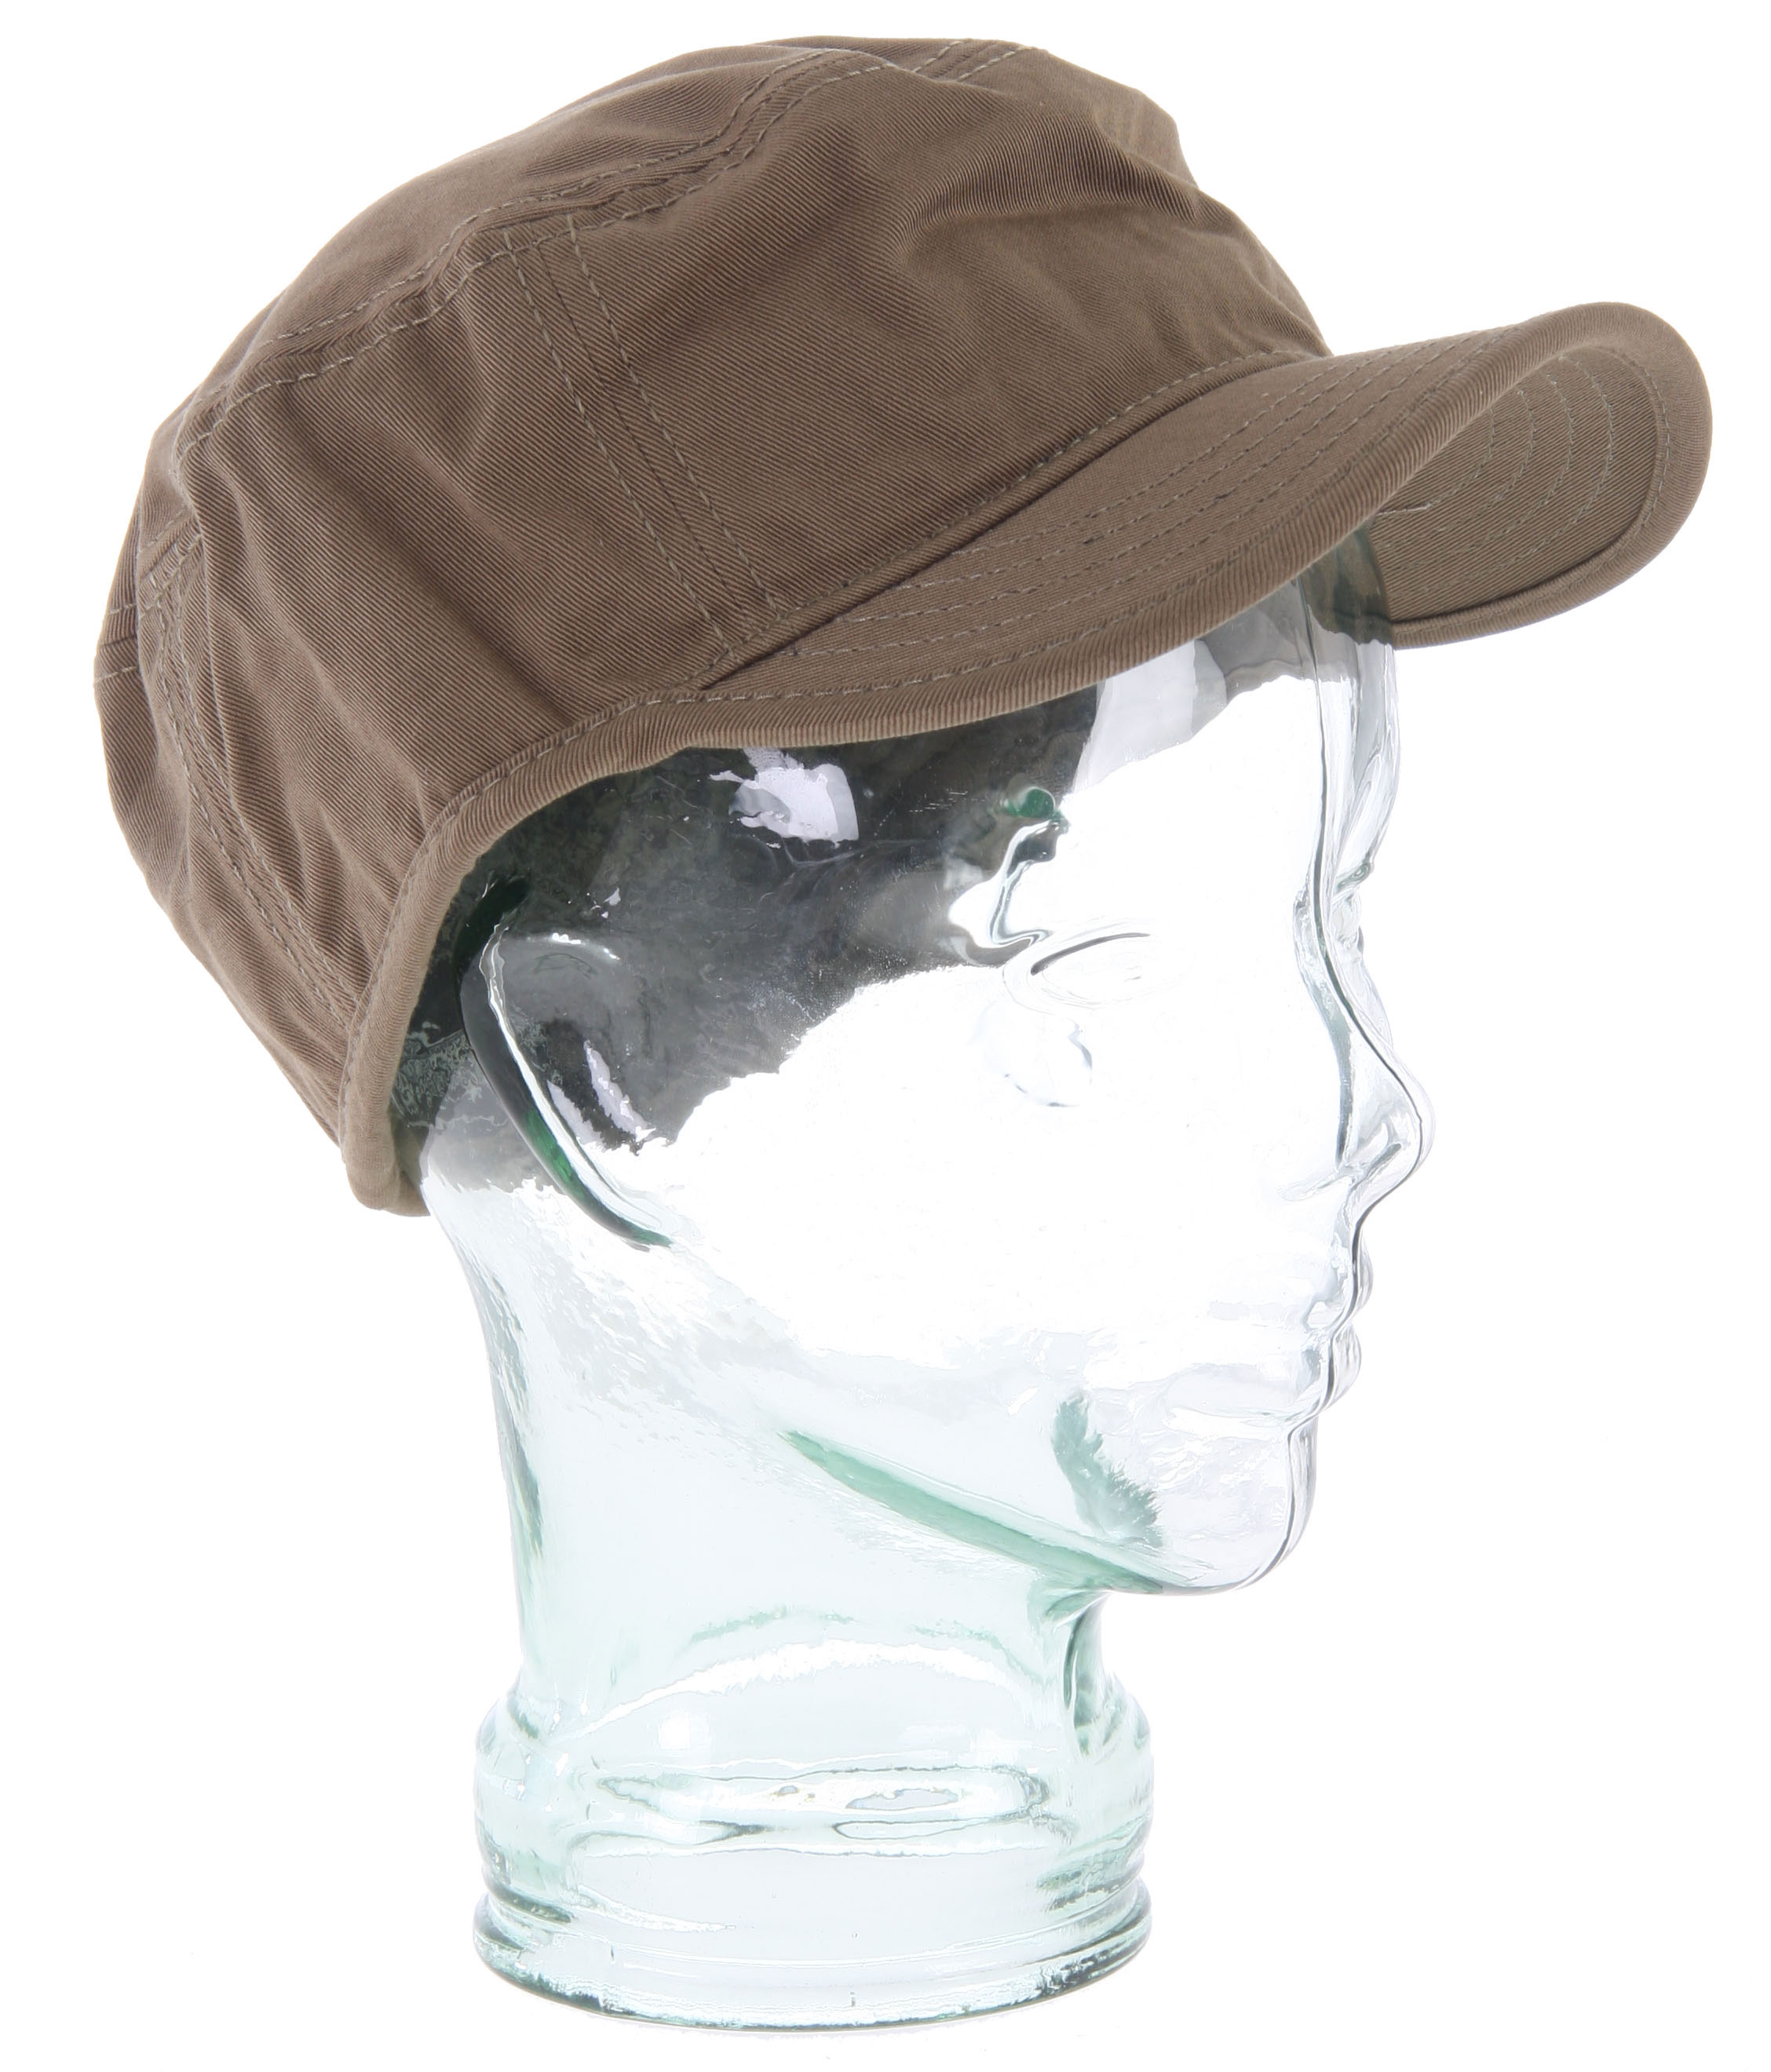 Planet Earth Johnston Hat Army - $11.17